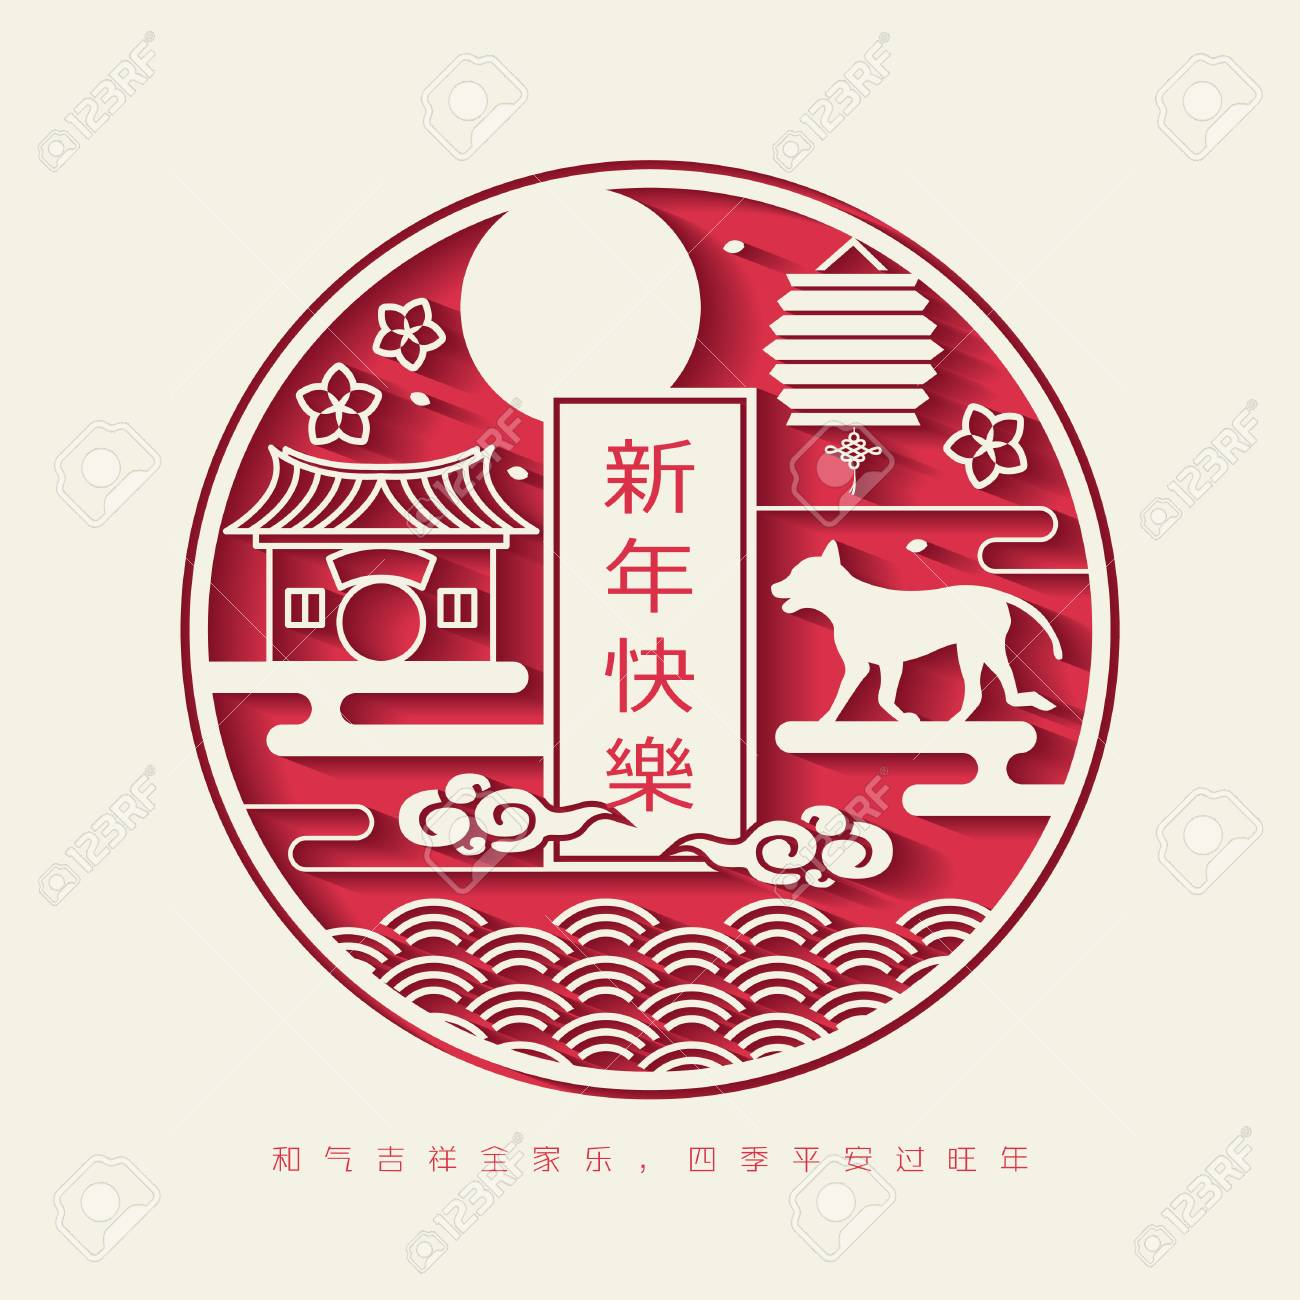 2018 Chinese New Year Paper Cutting Year of Dog Vector Design (Chinese Translation: Auspicious Year of the dog) - 93202294